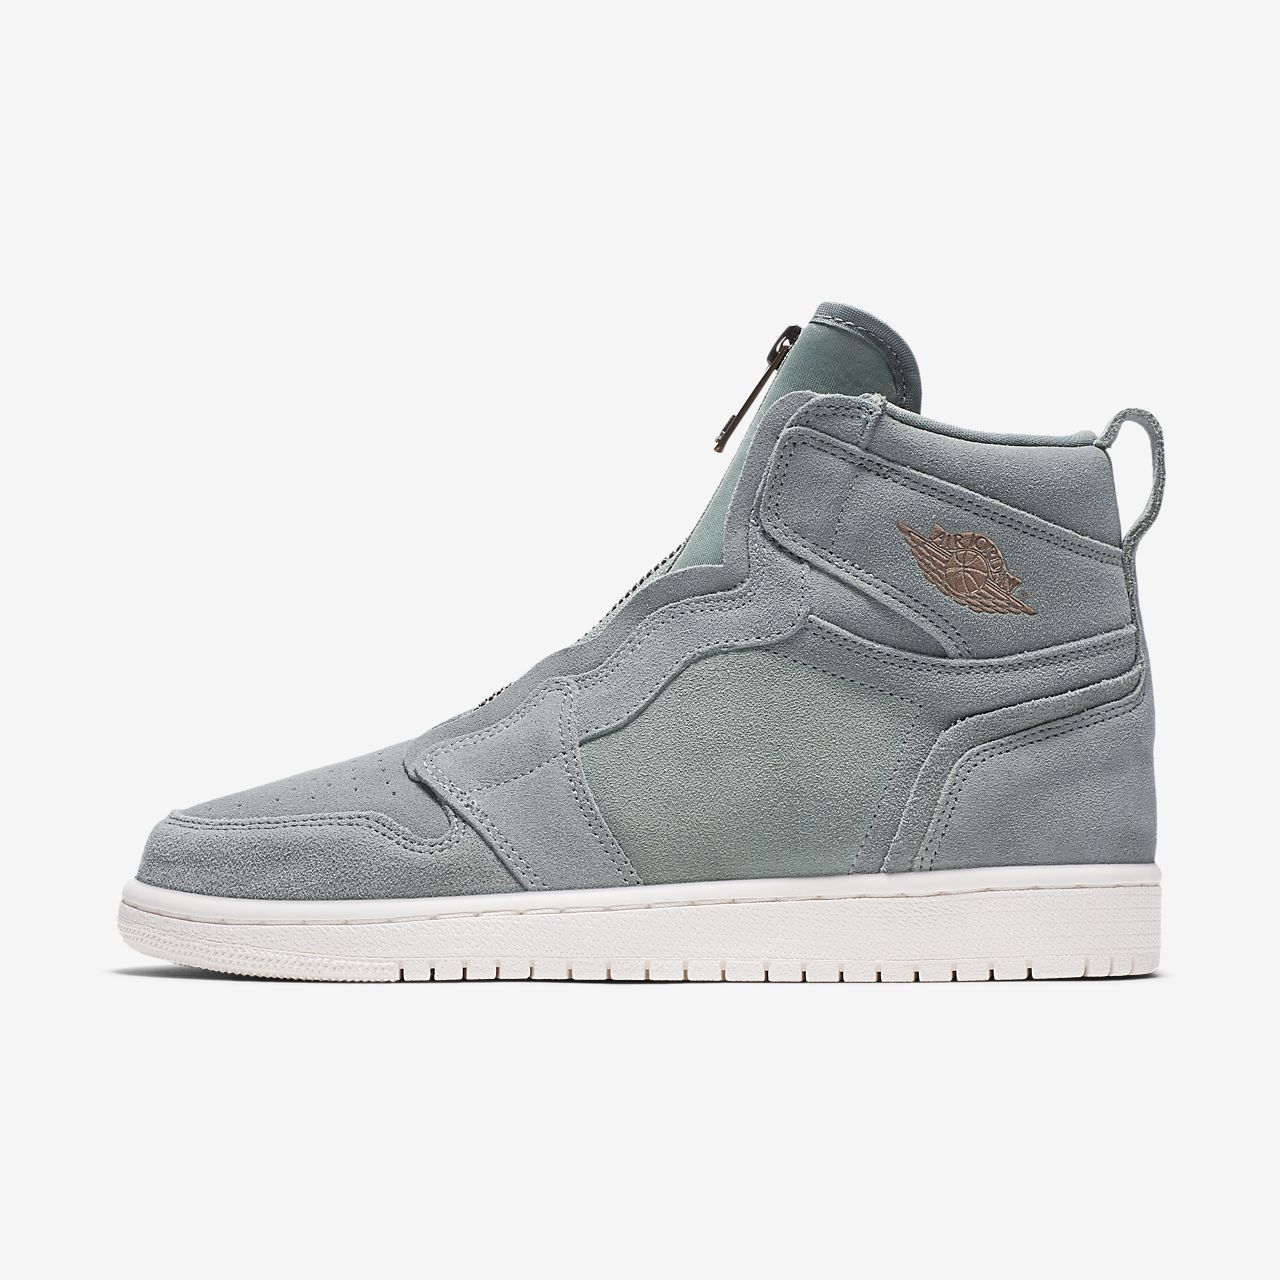 wholesale dealer 9f4f0 73592 Air Jordan 1 High Zip